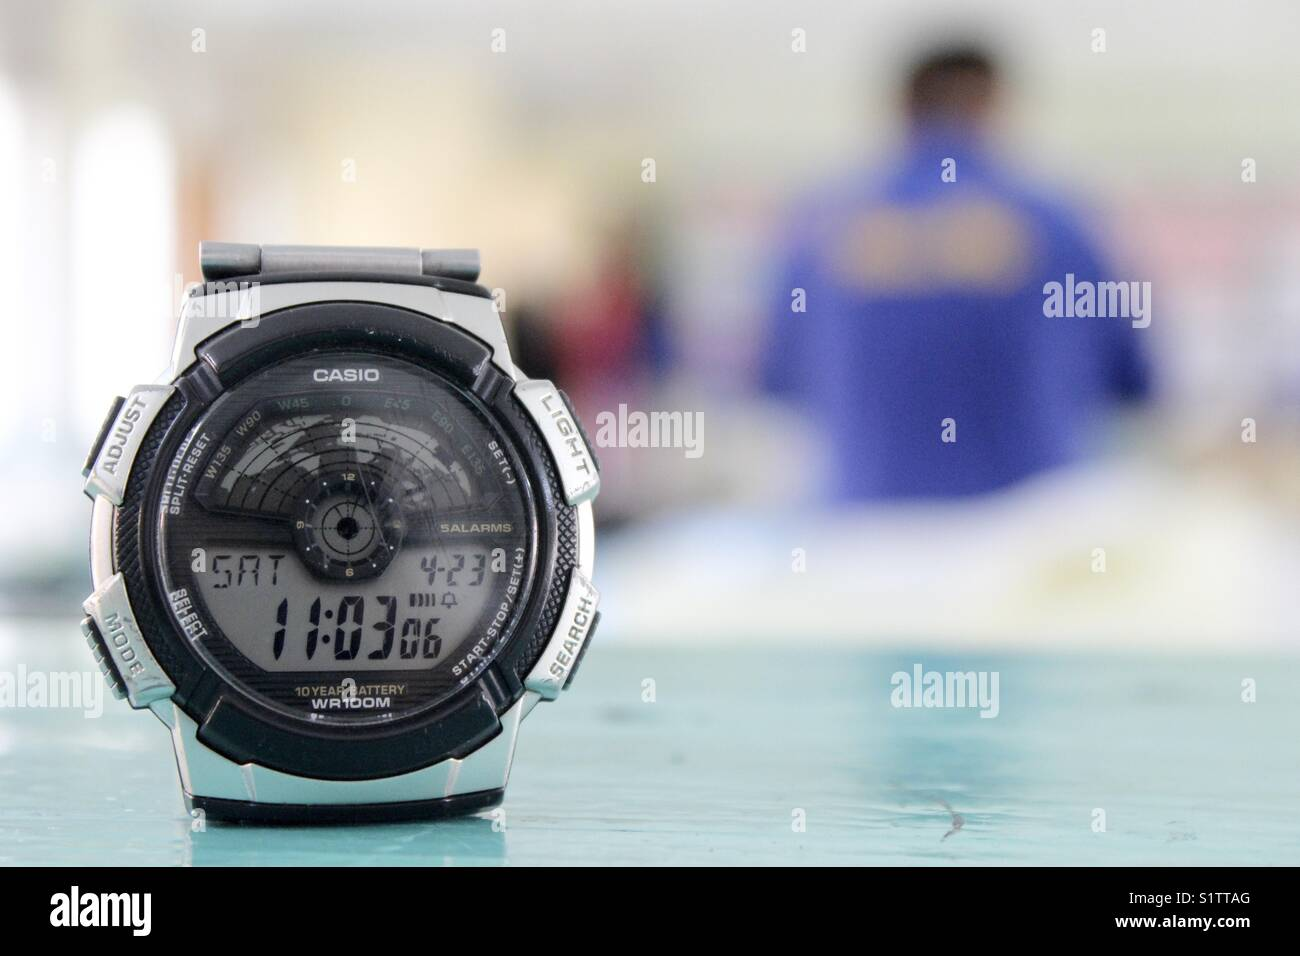 Casio Traveller Watch On The Desk Of Science Lab - Stock Image